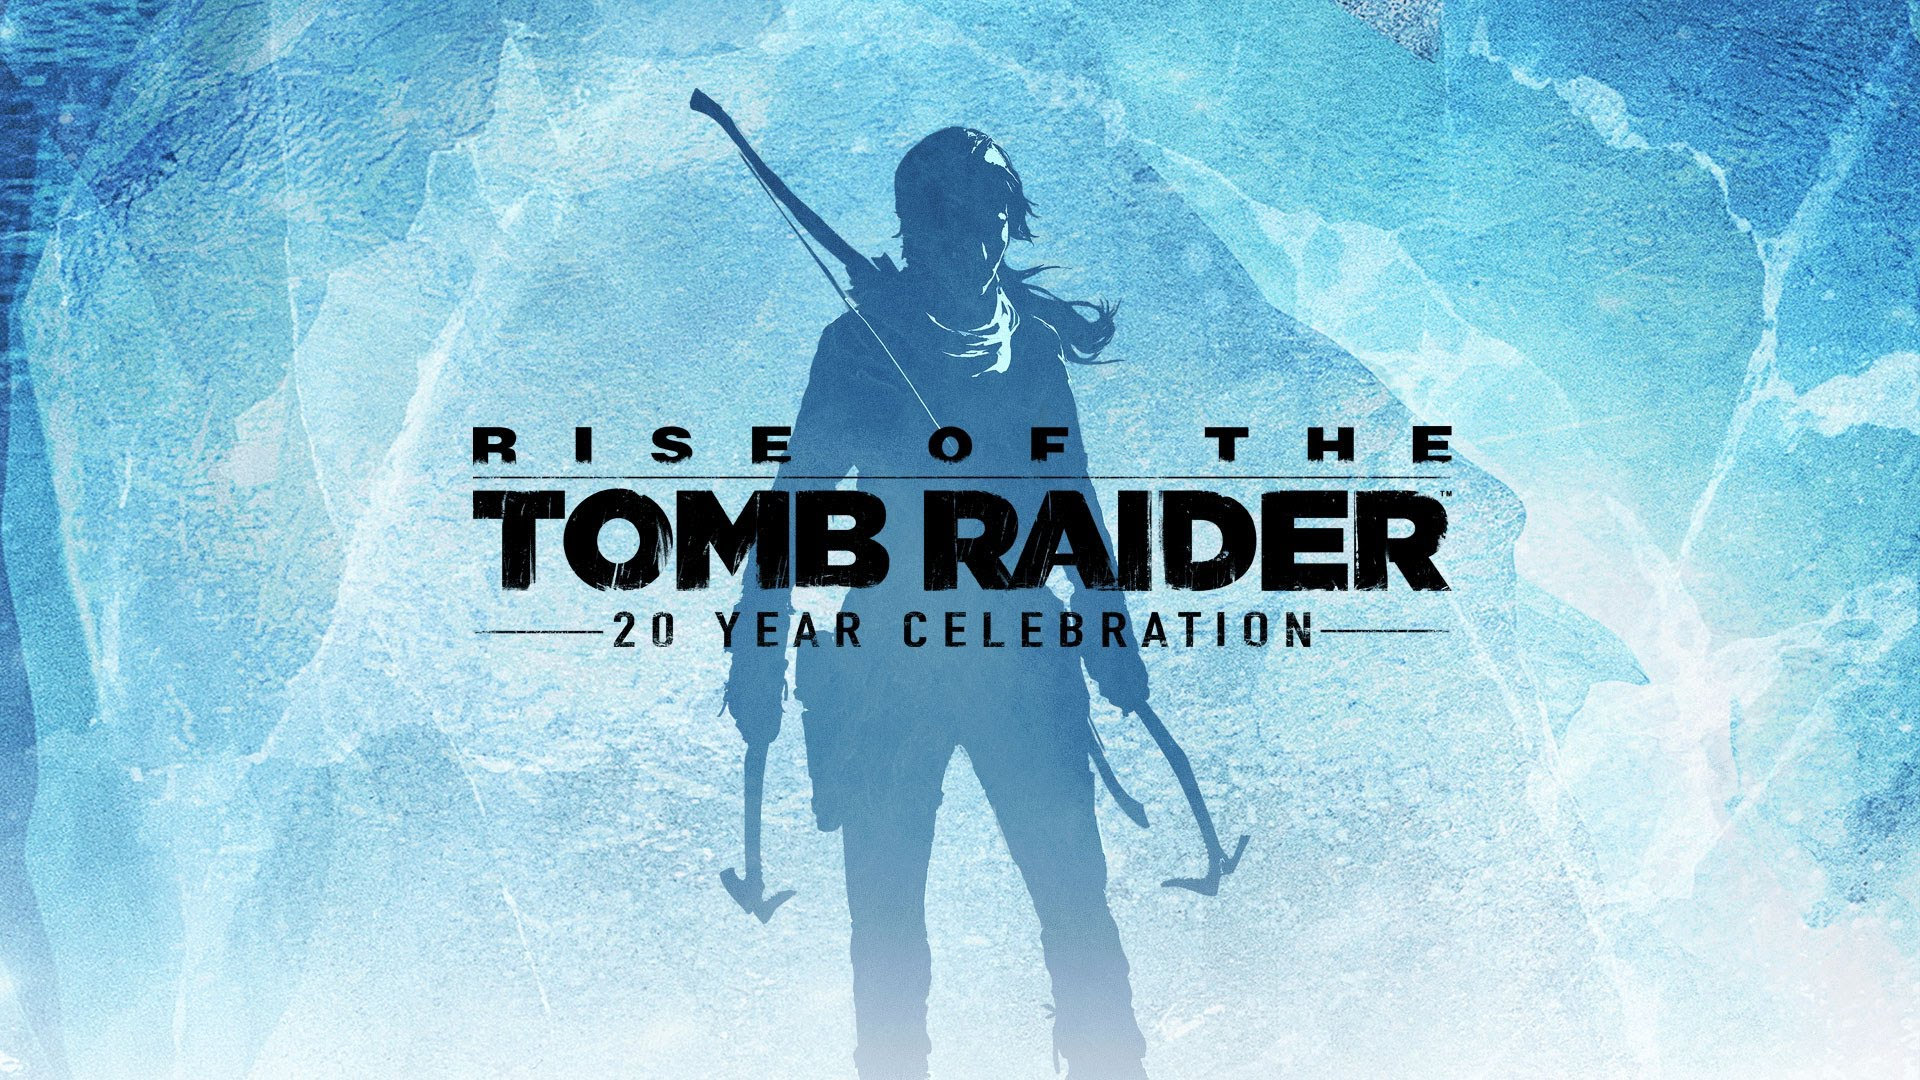 Crystal Dynamics developed the game to celebrate the franchise's anniversary. Photo credit: PSX Brasil Youtube Channel